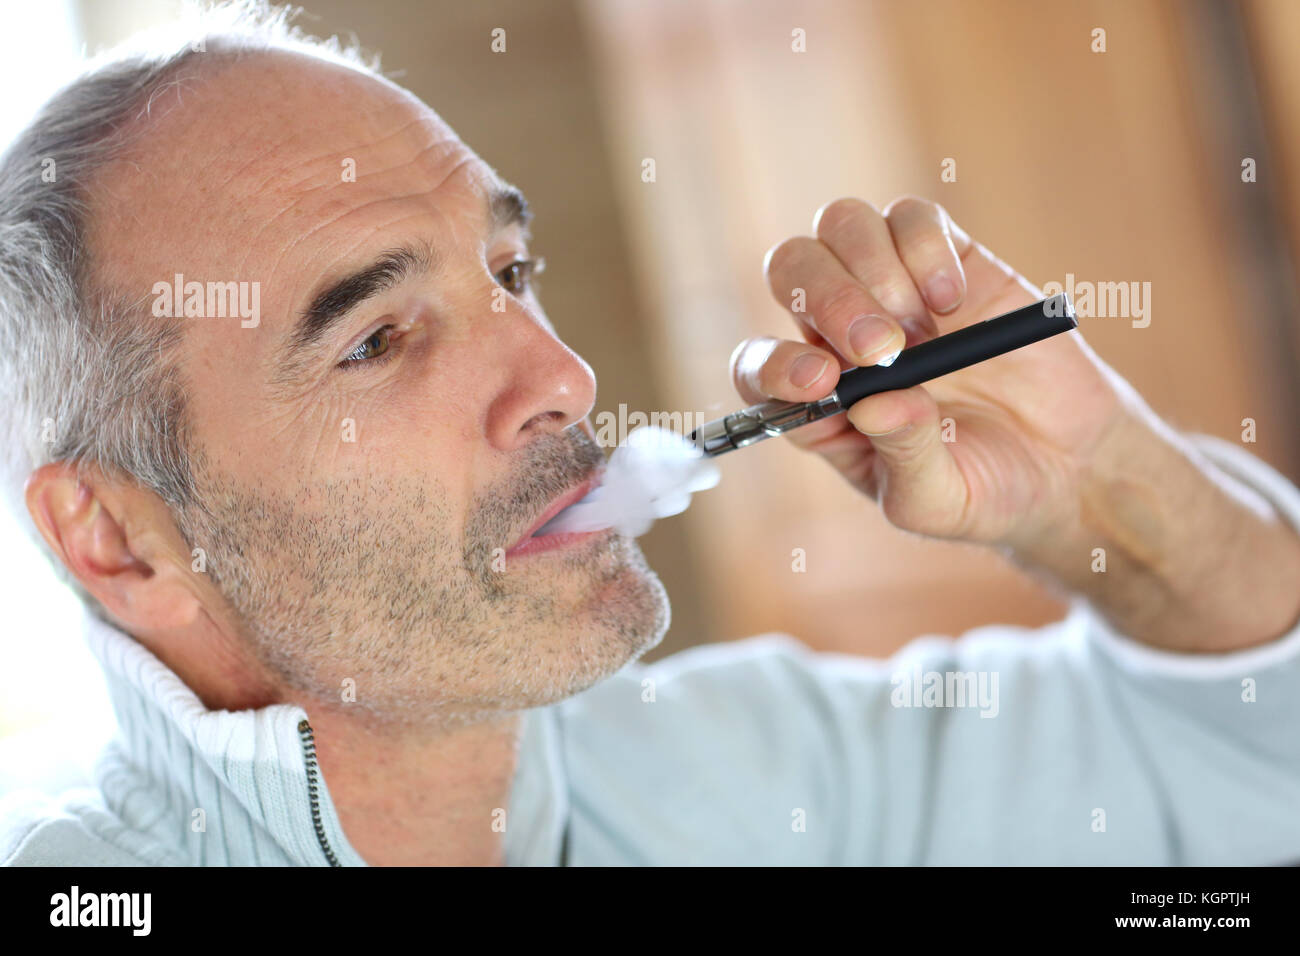 Portrait of senior smoker with electronic cigarette - Stock Image